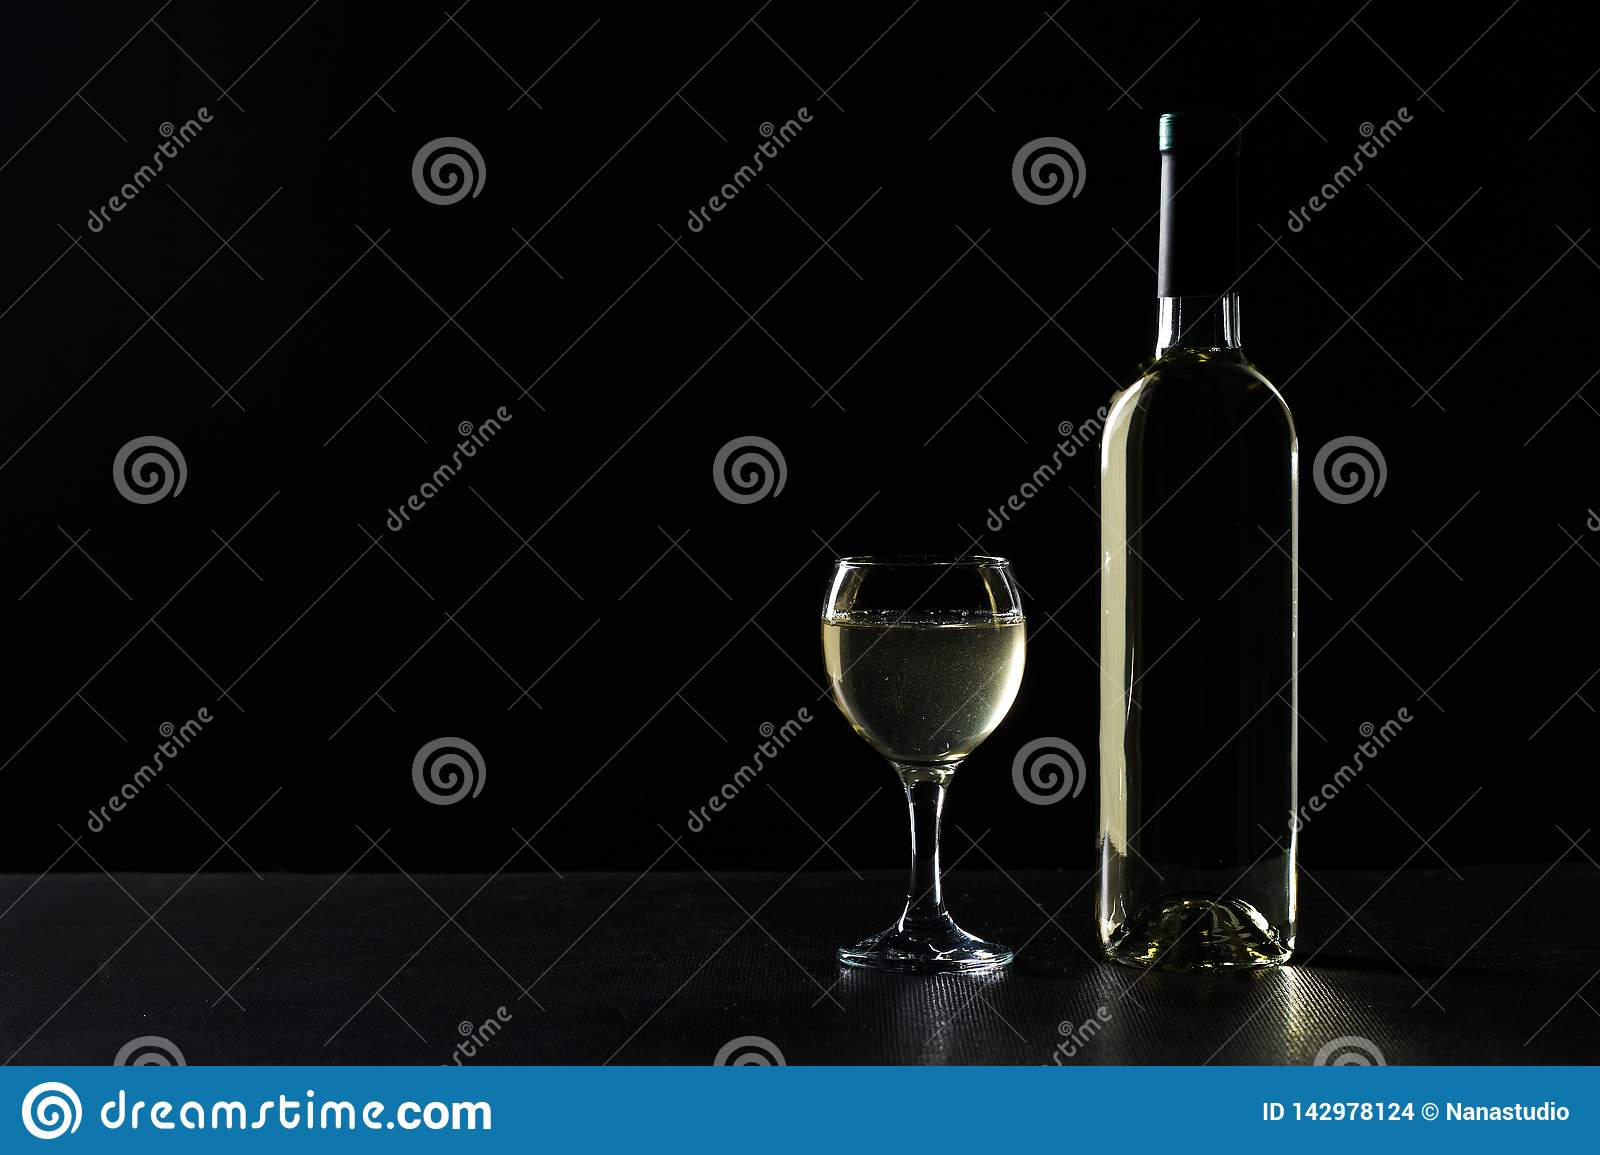 Wine bottle and glass with white wine on dark background